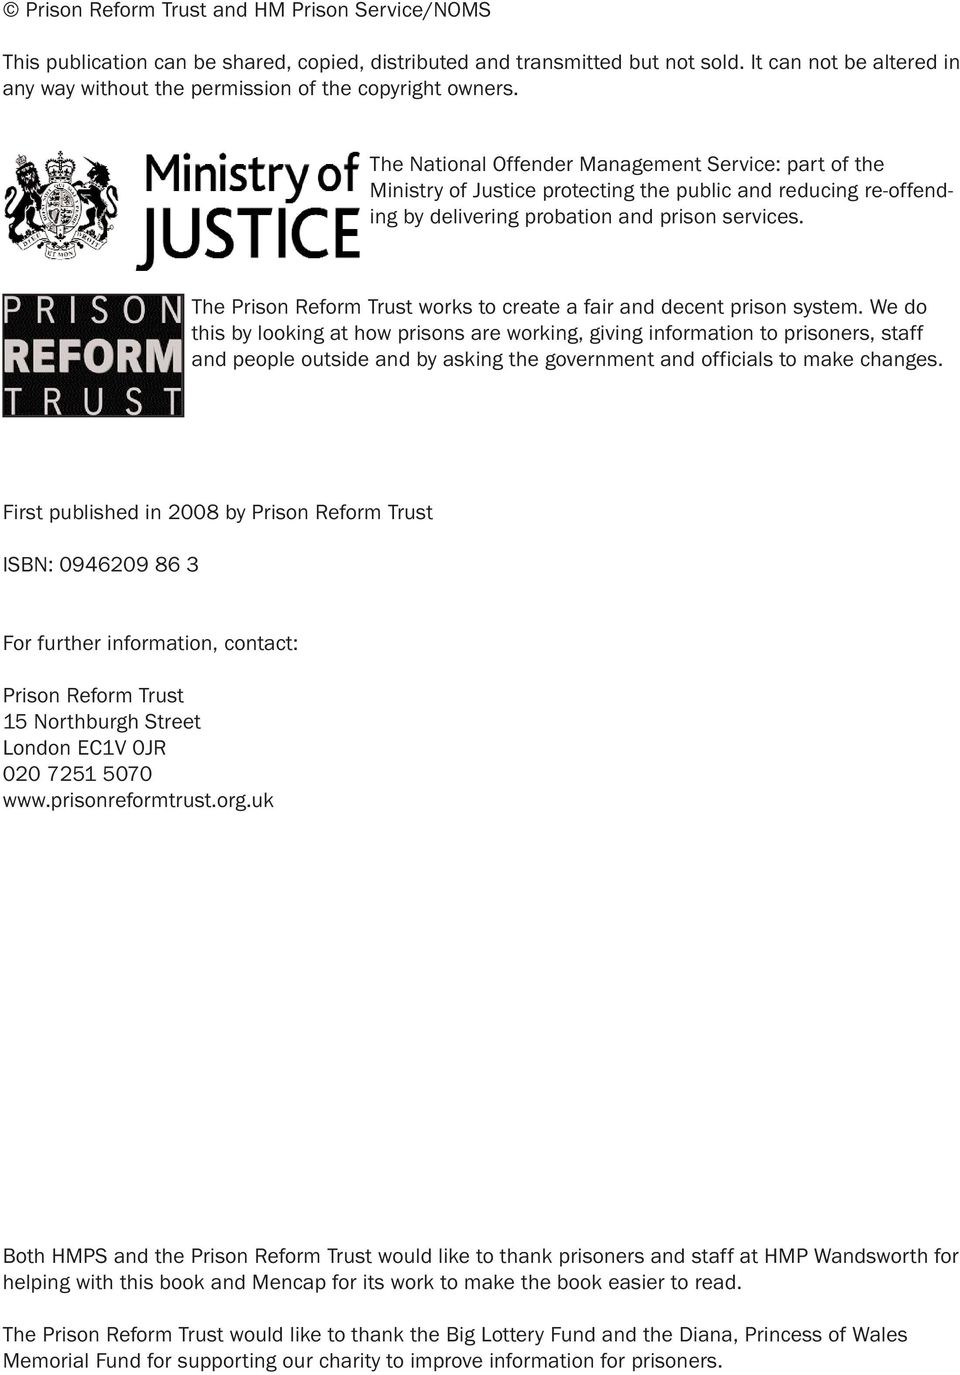 The National Offender Management Service: part of the Ministry of Justice protecting the public and reducing re-offending by delivering probation and prison services.